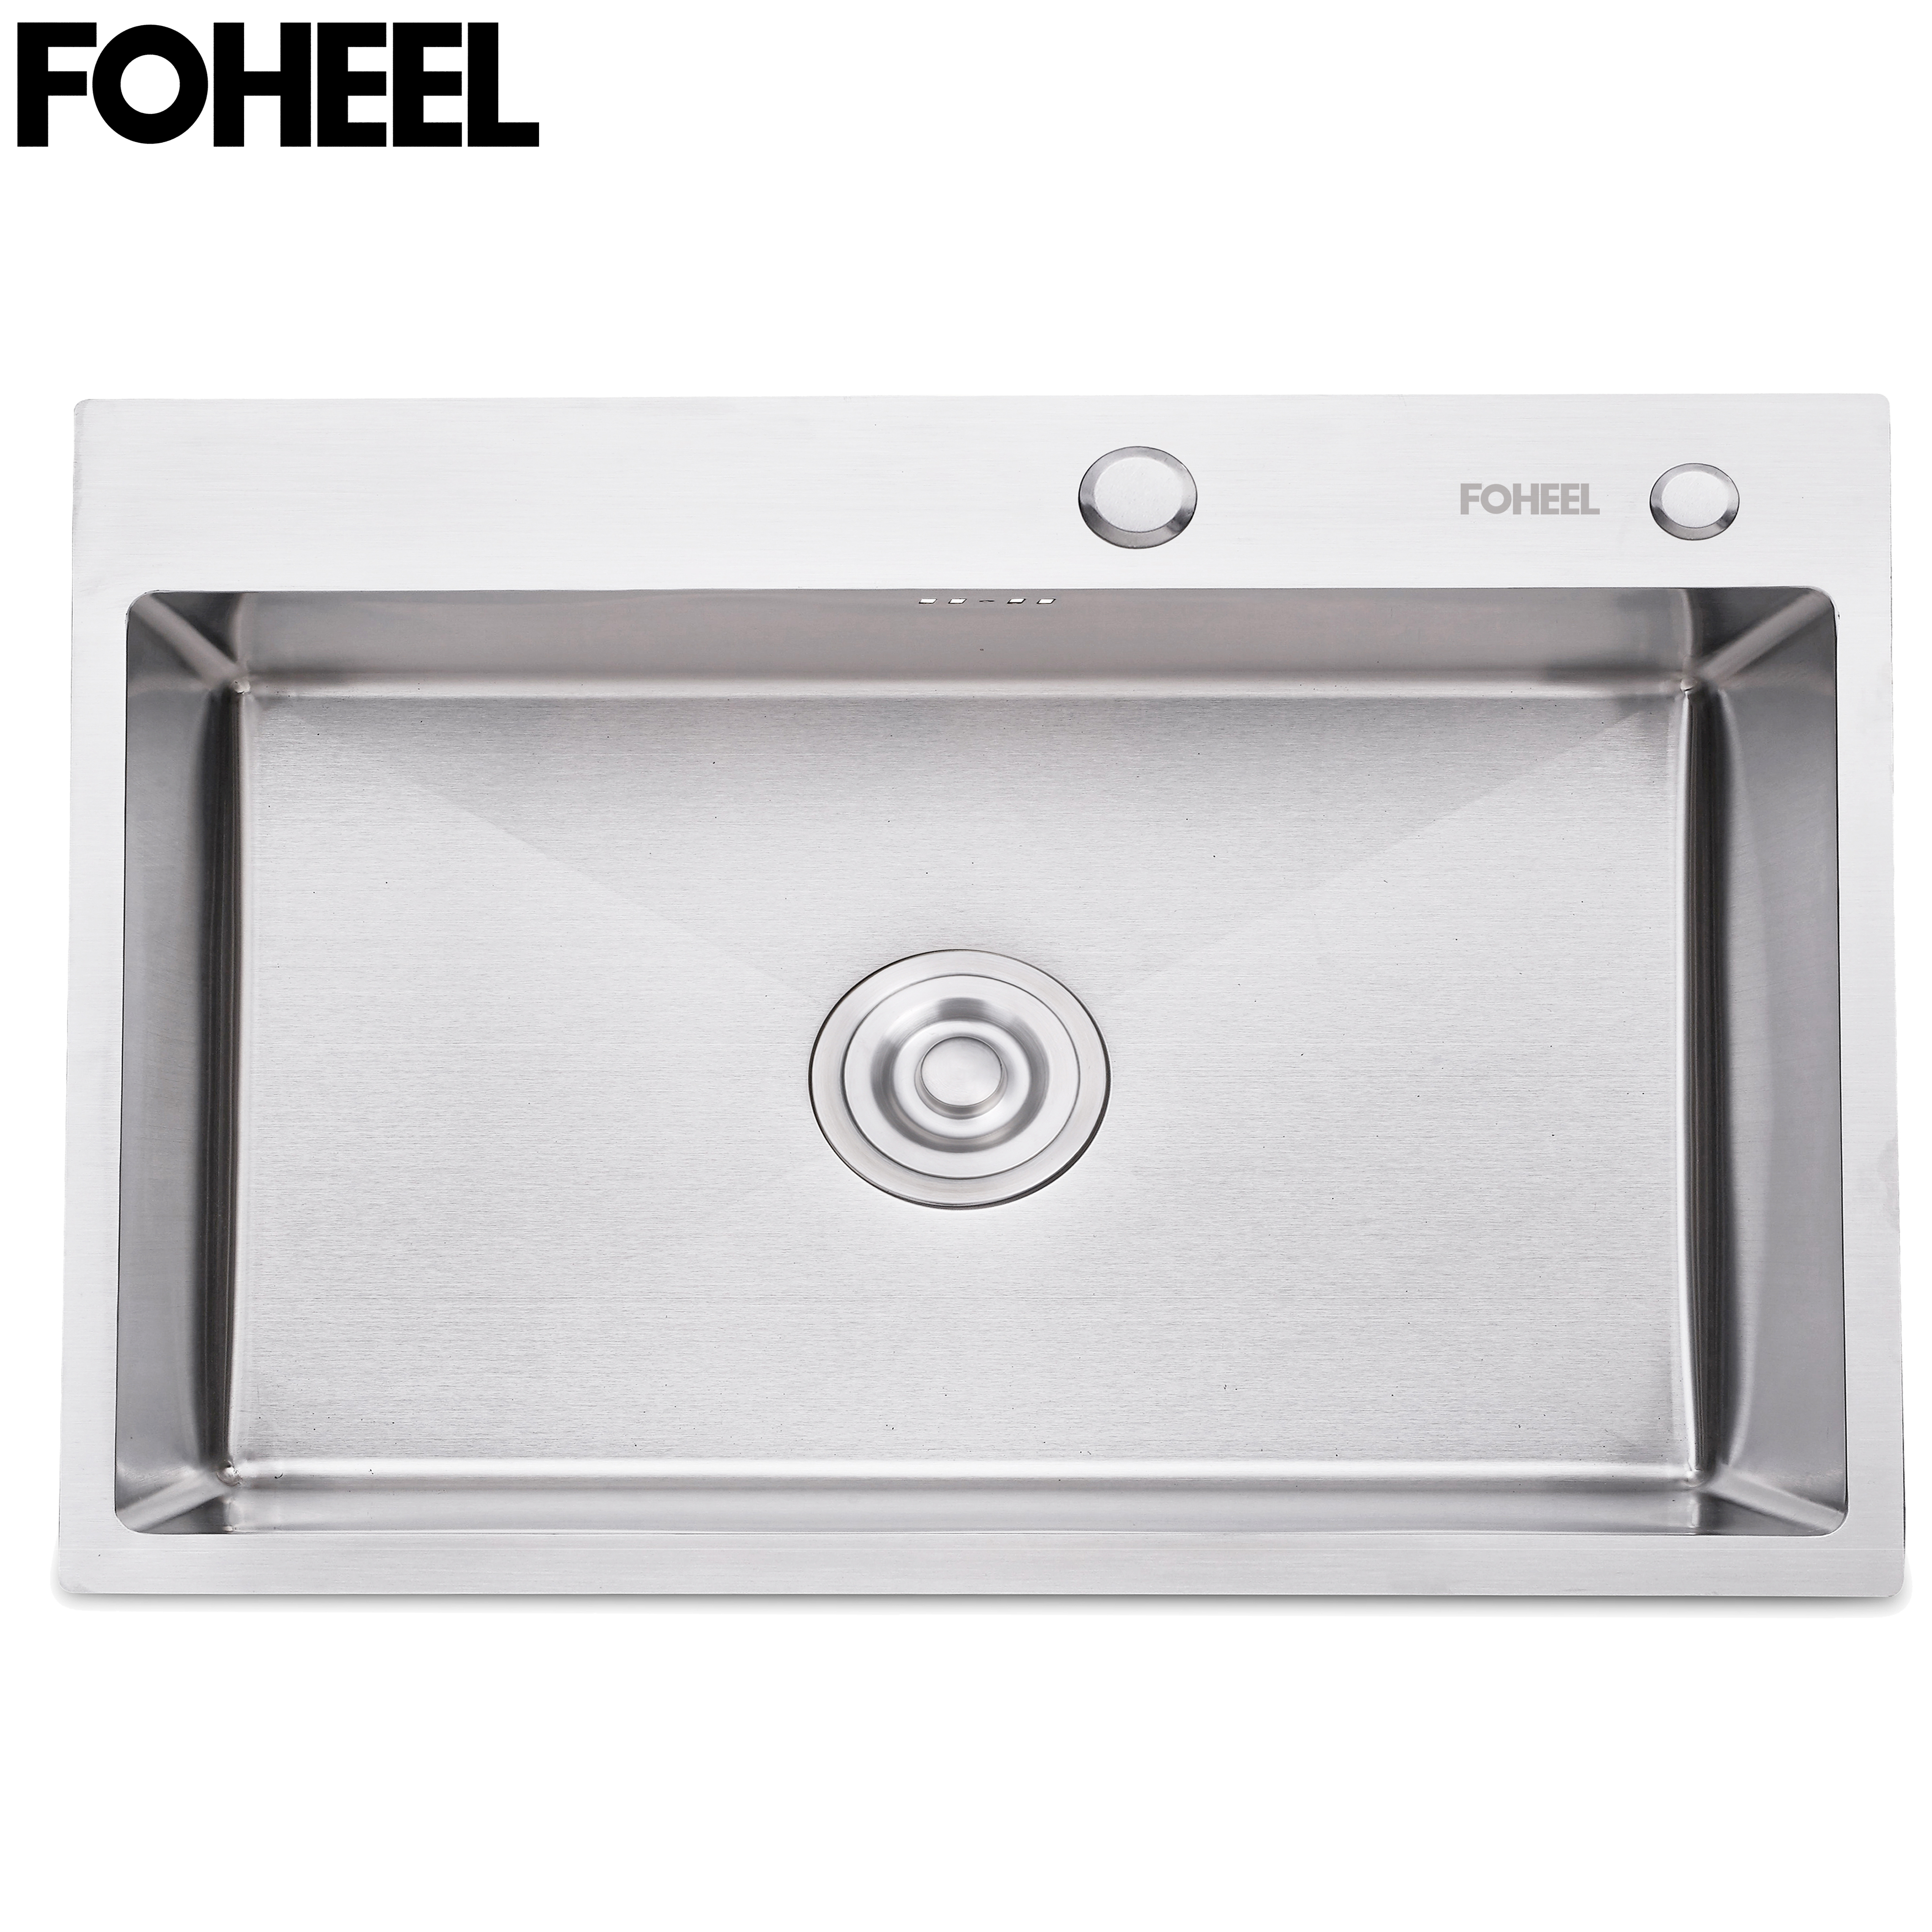 FOHEEL Stainless Steel Kitchen Sink Single Slot Dish Basin Single Kitchen Sink With Drain Basket And Drain Pipe